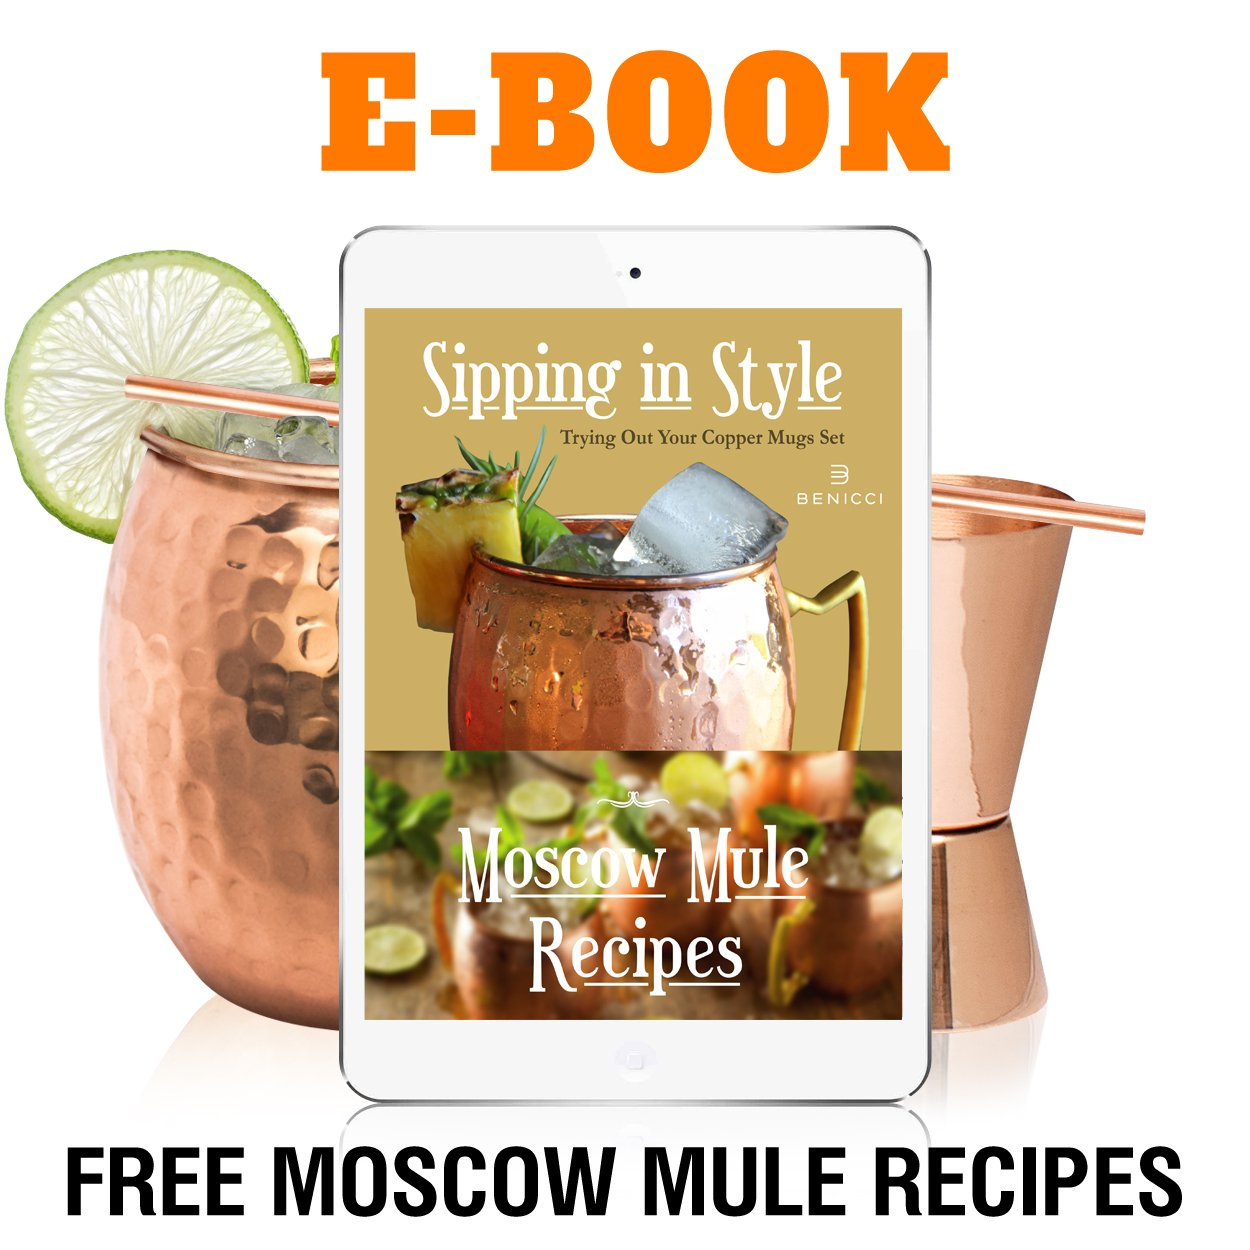 Moscow Mule Copper Mugs - Set of 4-100% HANDCRAFTED - Food Safe Pure Solid Copper Mugs - 16 oz Gift Set with BONUS: Highest Quality Cocktail Copper Straws and Jigger! by Benicci (Image #8)